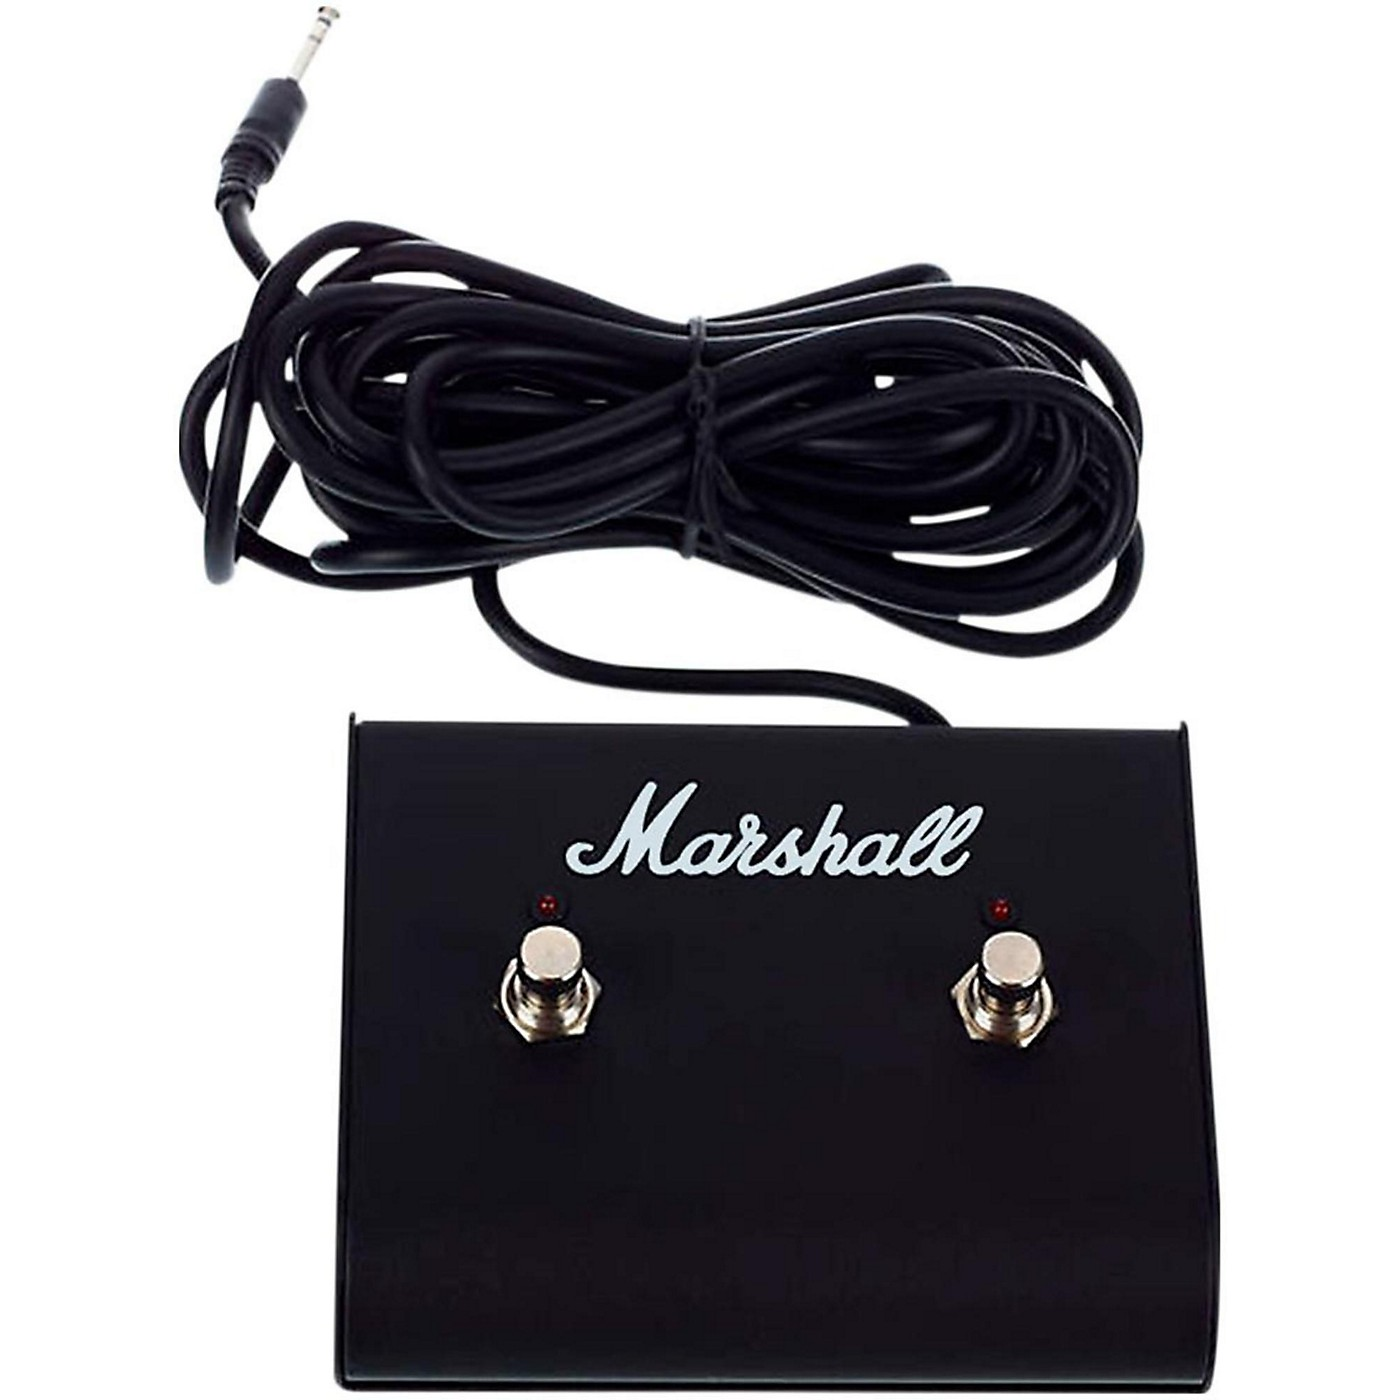 Marshall M-PEDL 2-Way Footswitch with LEDs thumbnail